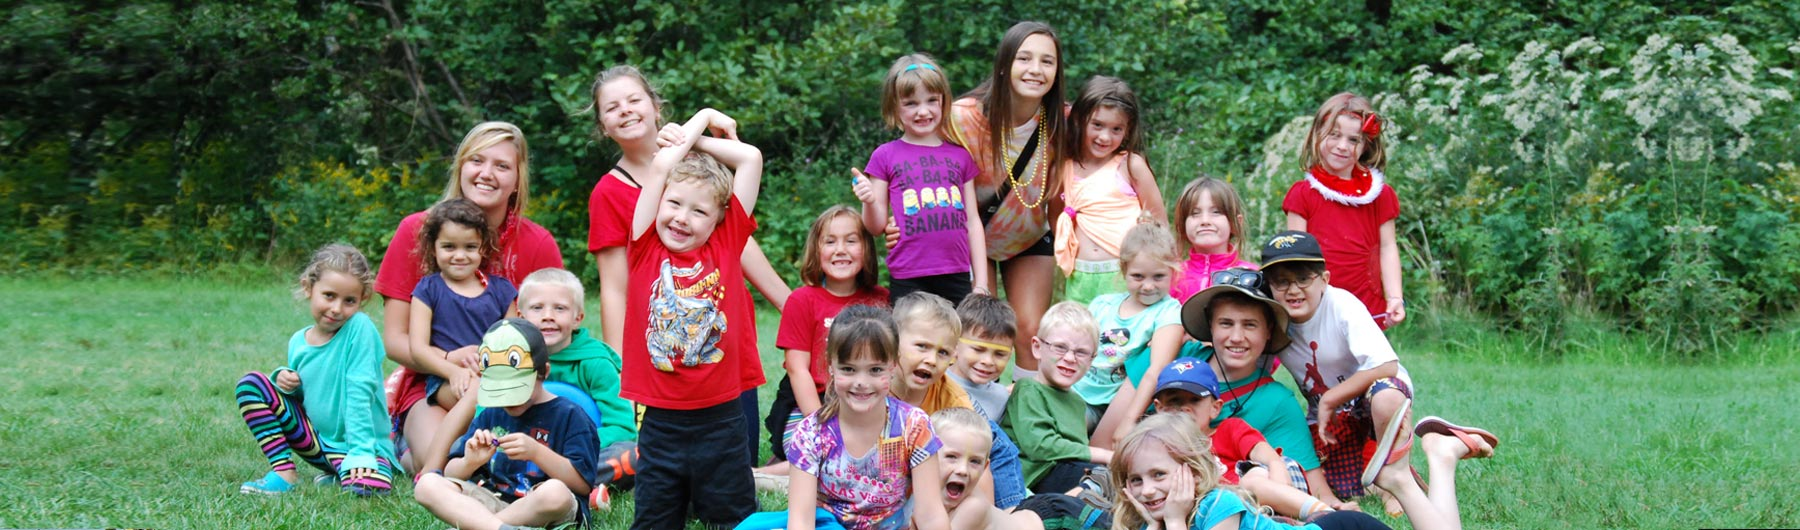 Summer Camp kids in a group smiling and goofing around